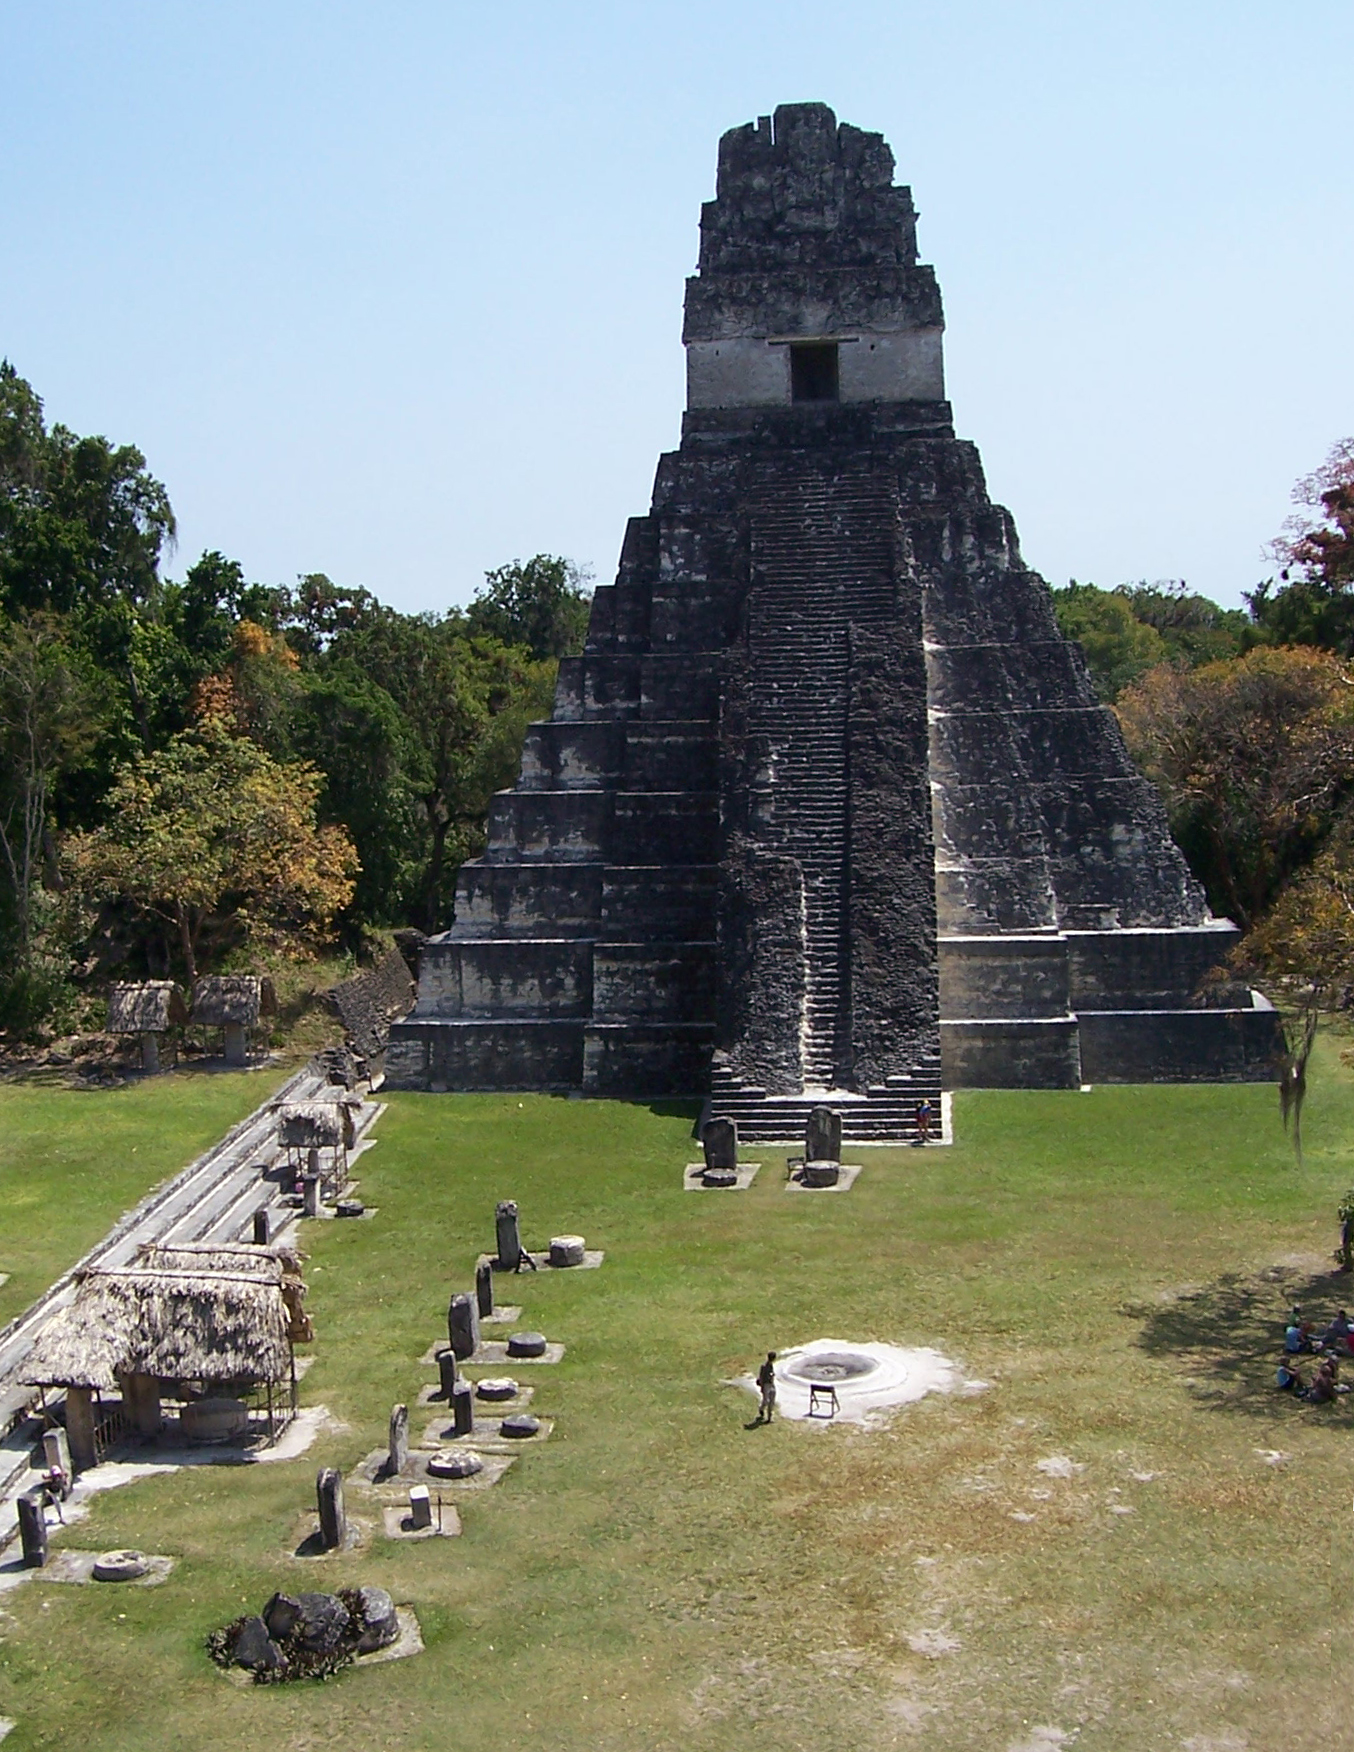 """an analysis of the ancient maya Earlier maya pottery studies had followed procedures of modal or attribute analysis and description, typically segregating pottery into generic """"wares"""" on the basis of slip color and form as at uaxactún (smith 1955) and san josé, belize (thompson 1939)."""